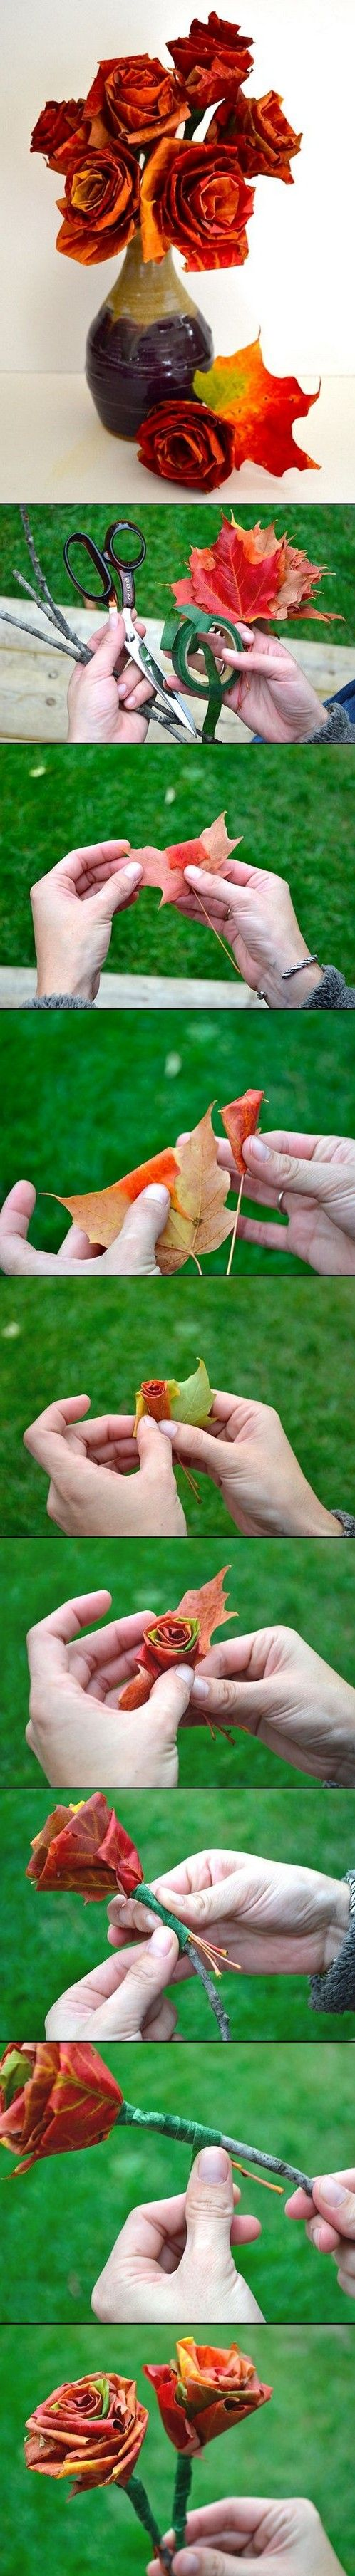 DIY AUTUMN LEAF BOUQUET~ ღ OMGAWSH LOOKS LIKE SO MUCH FUN!! ღ